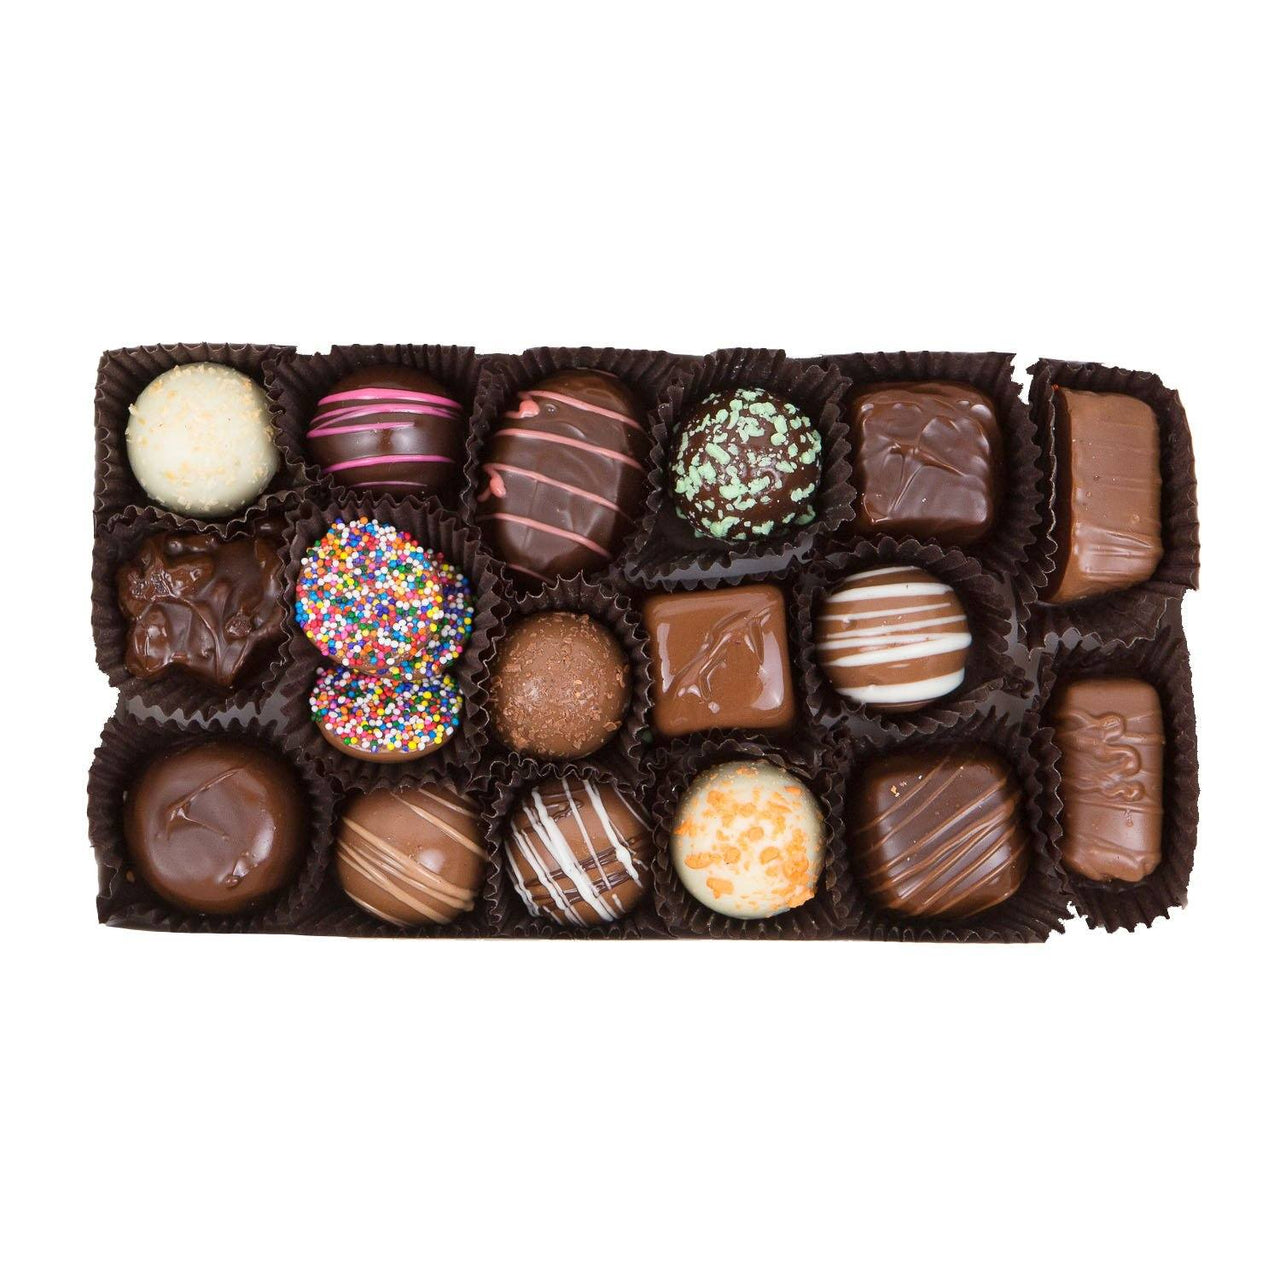 Gifts for Coffee Lovers - Assorted Chocolate Gift Box - Jackie's Chocolate